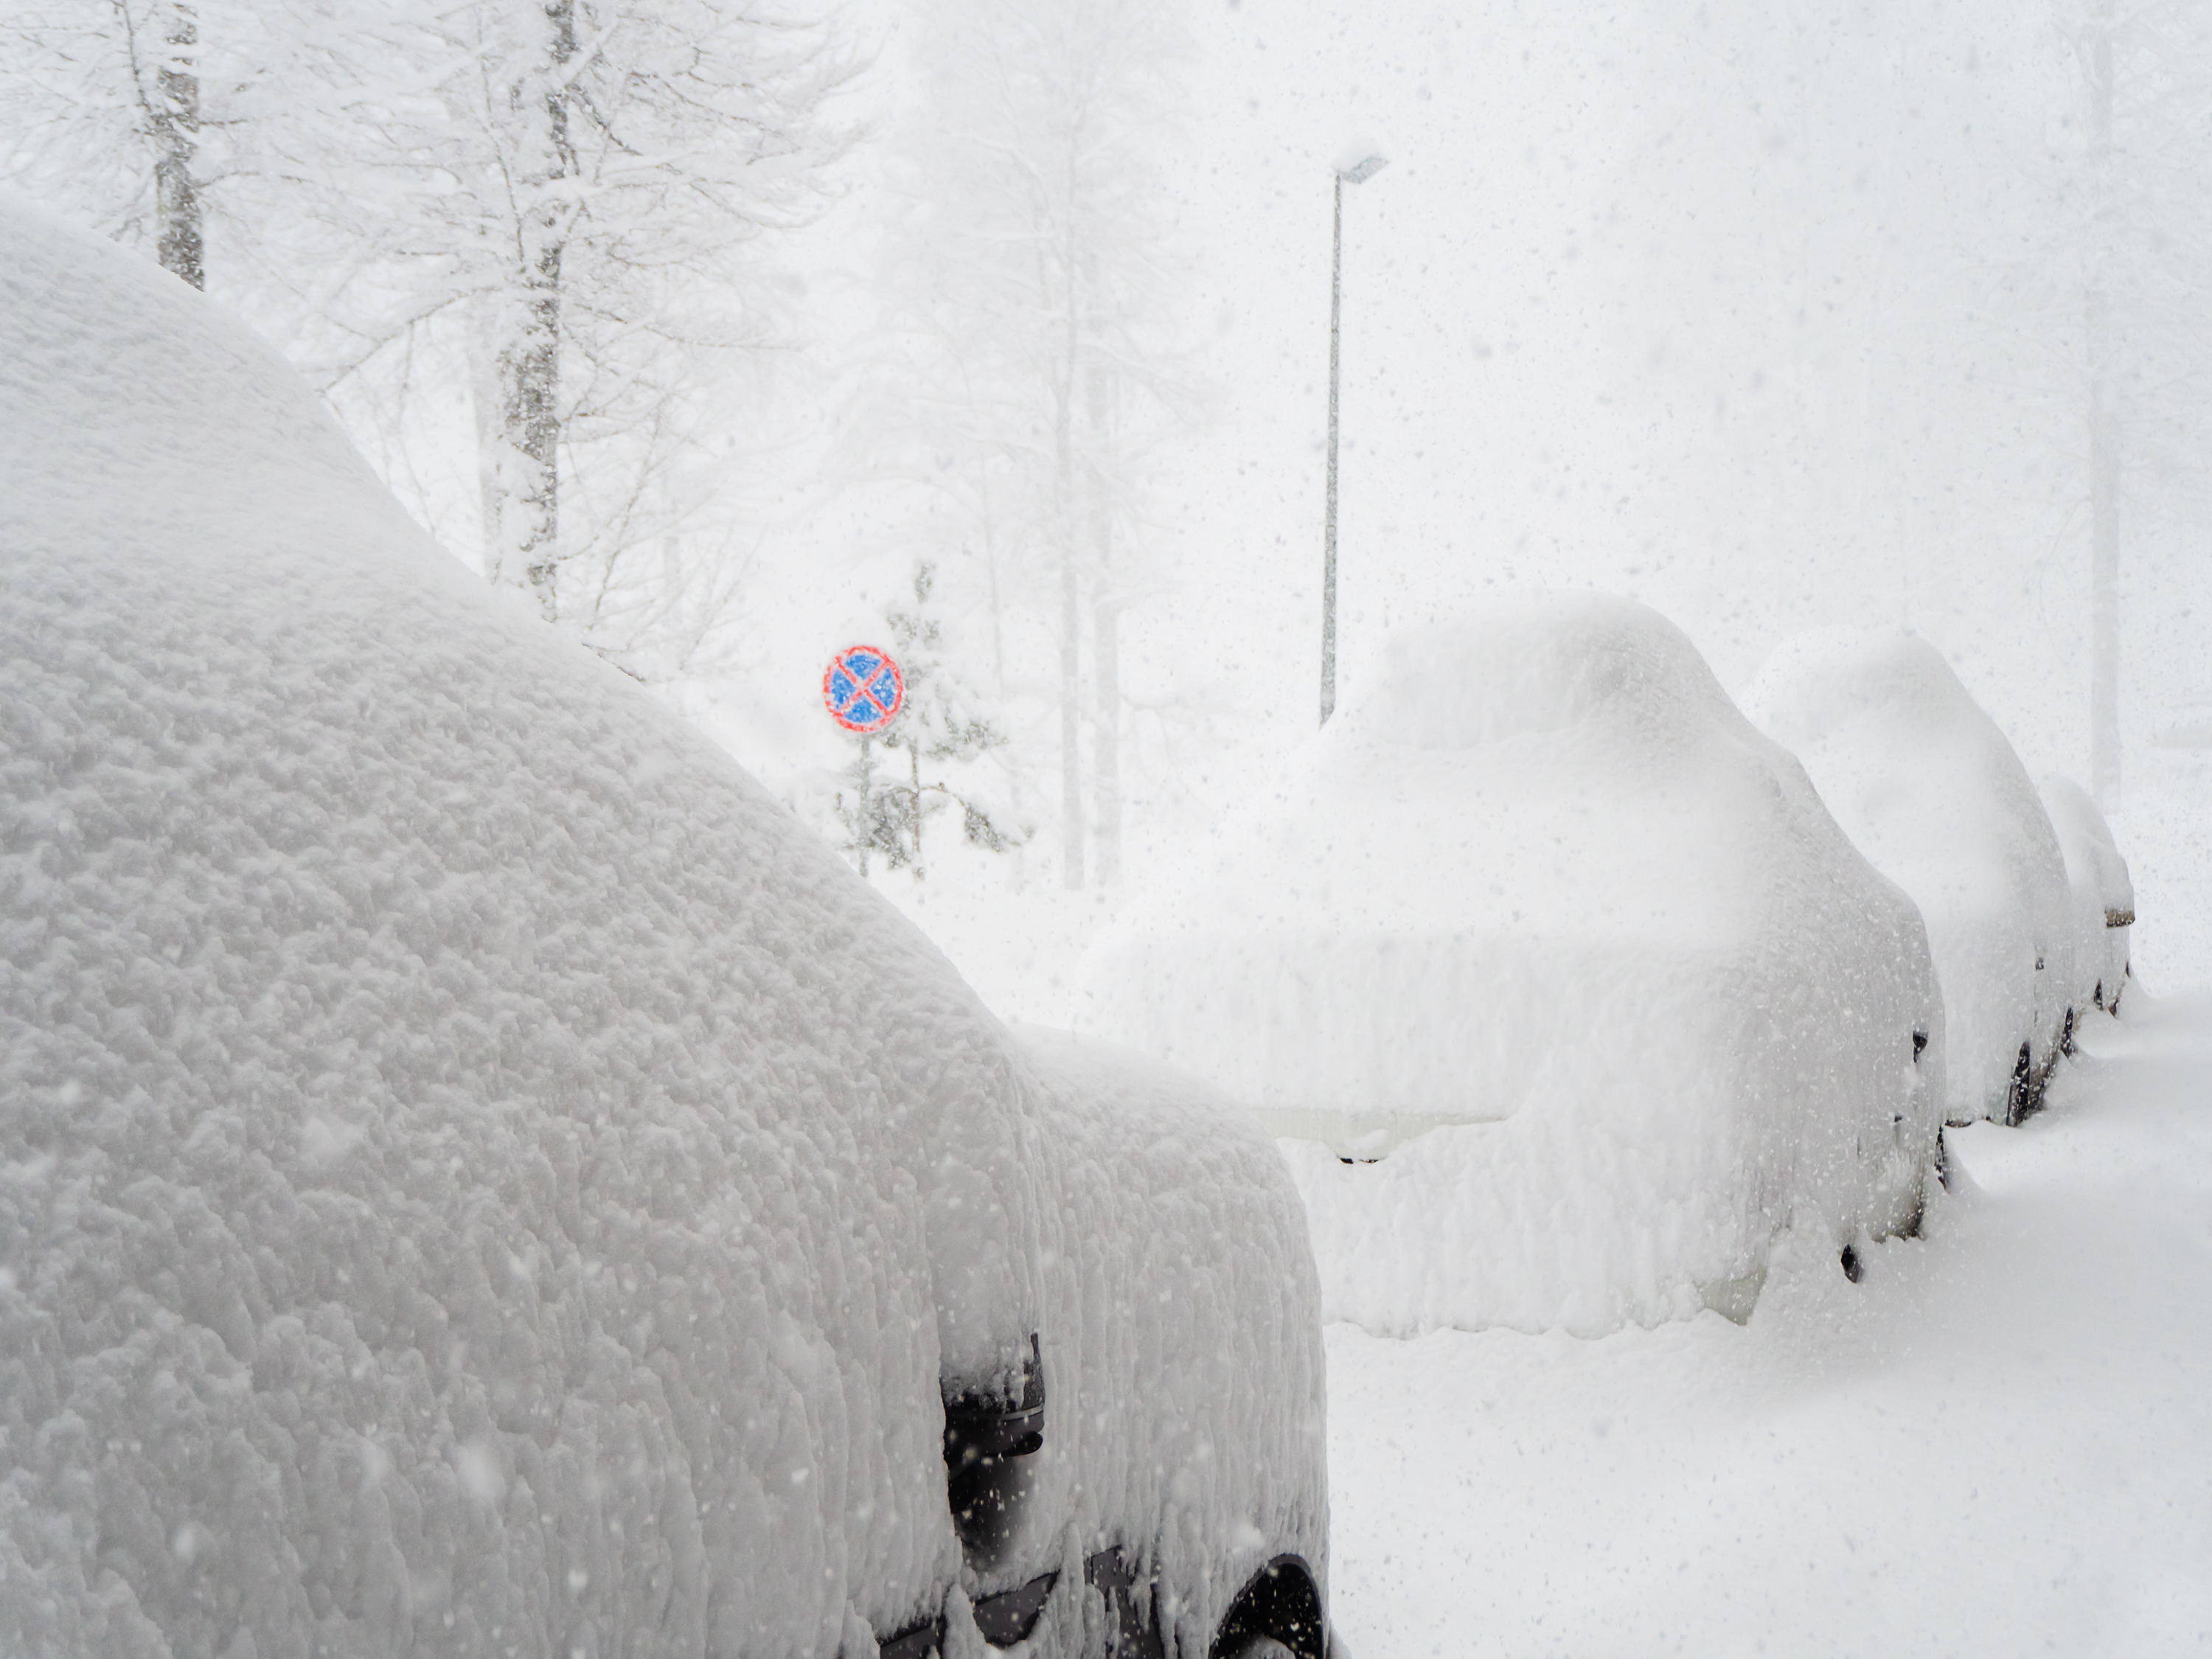 Cars heavily covered with snow are parked outside on a foggy day during a snowfall